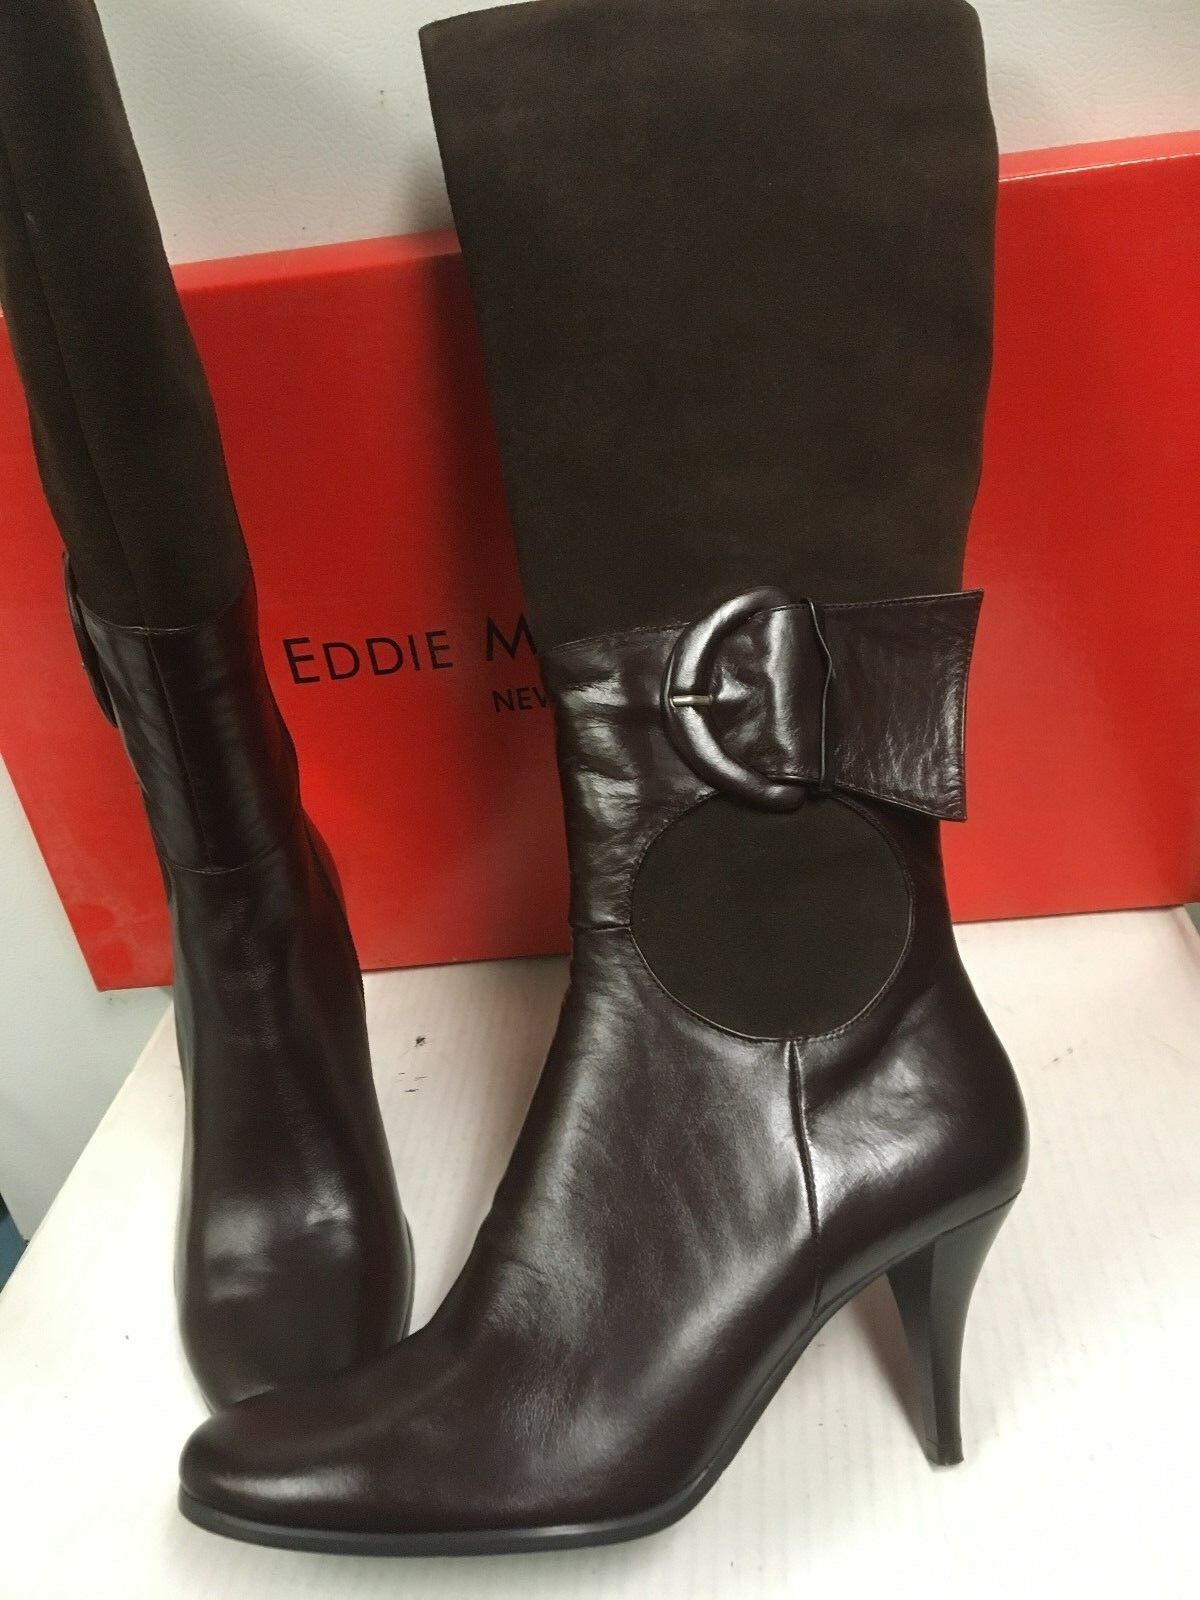 Eddie Marc Buckle Heel Stiefel Coffee with Buckle 38  Größe EU 38 Buckle US 7 cc4541